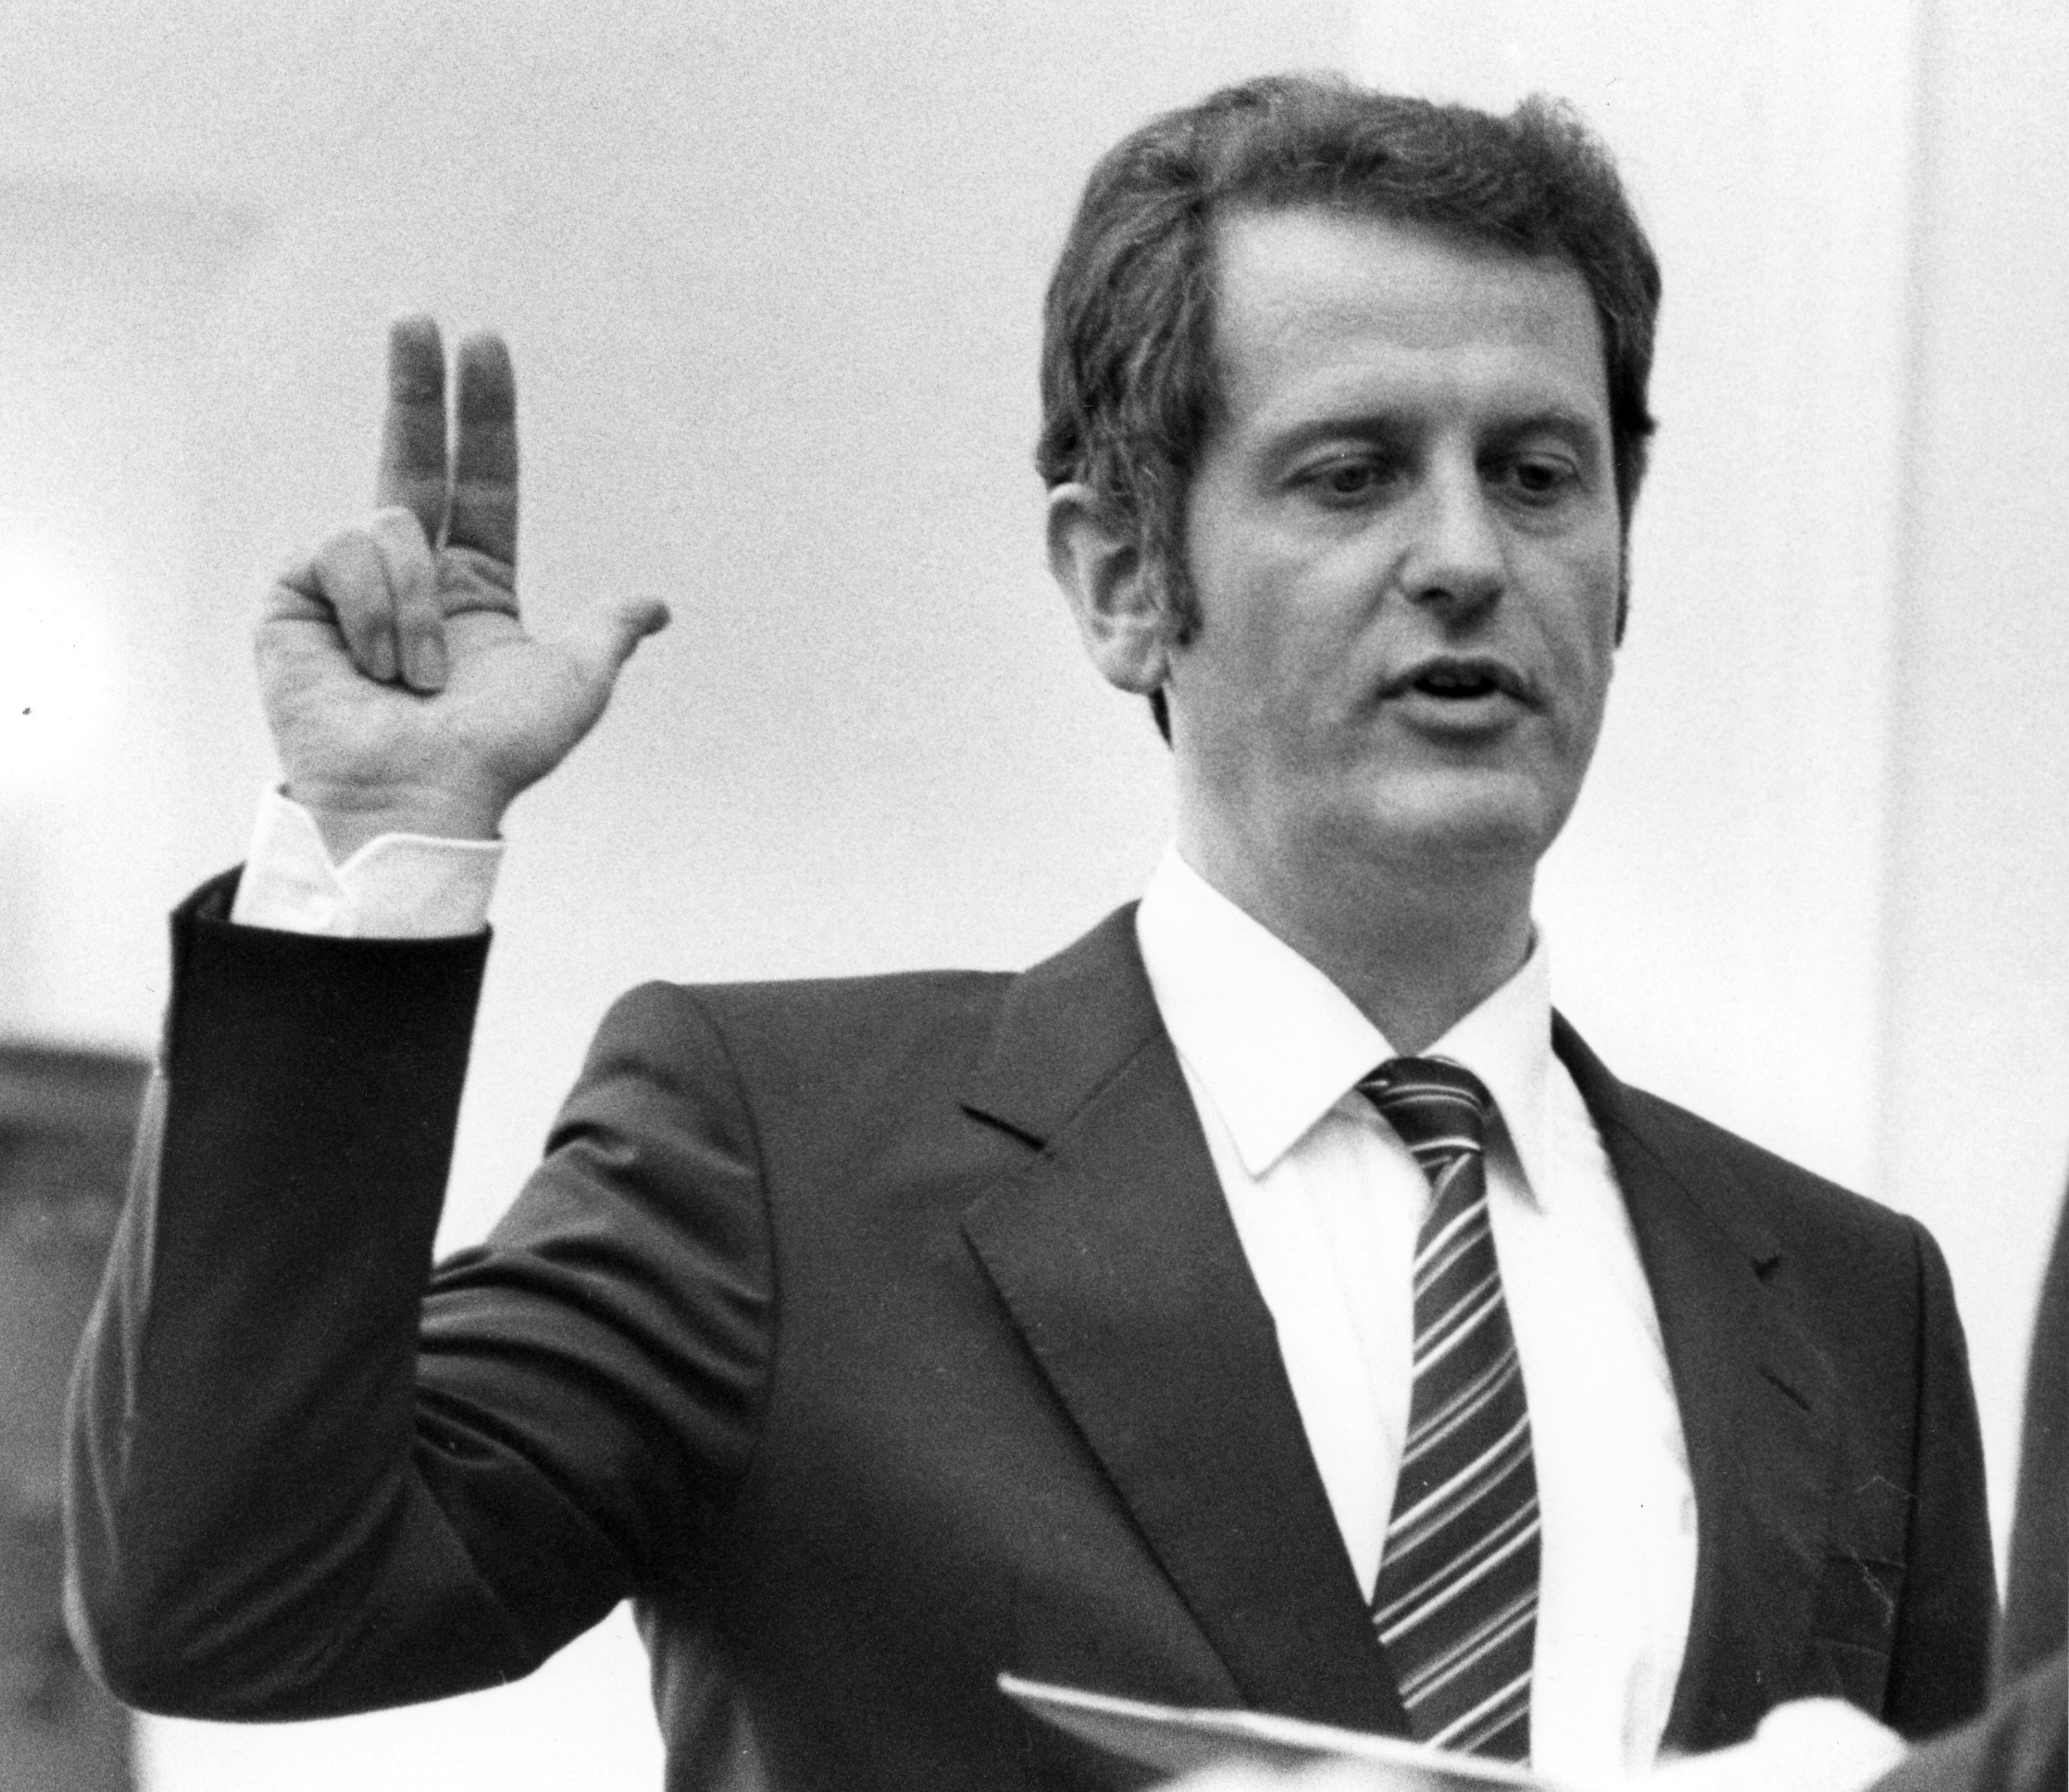 Politician Uwe Barschel, Christian democrats (CDU), gives his oath during the swearing in ceremony after beeing elected as new State Governor of Schleswig-Holstein northern West Germany, in Kiel, October 14, 1982